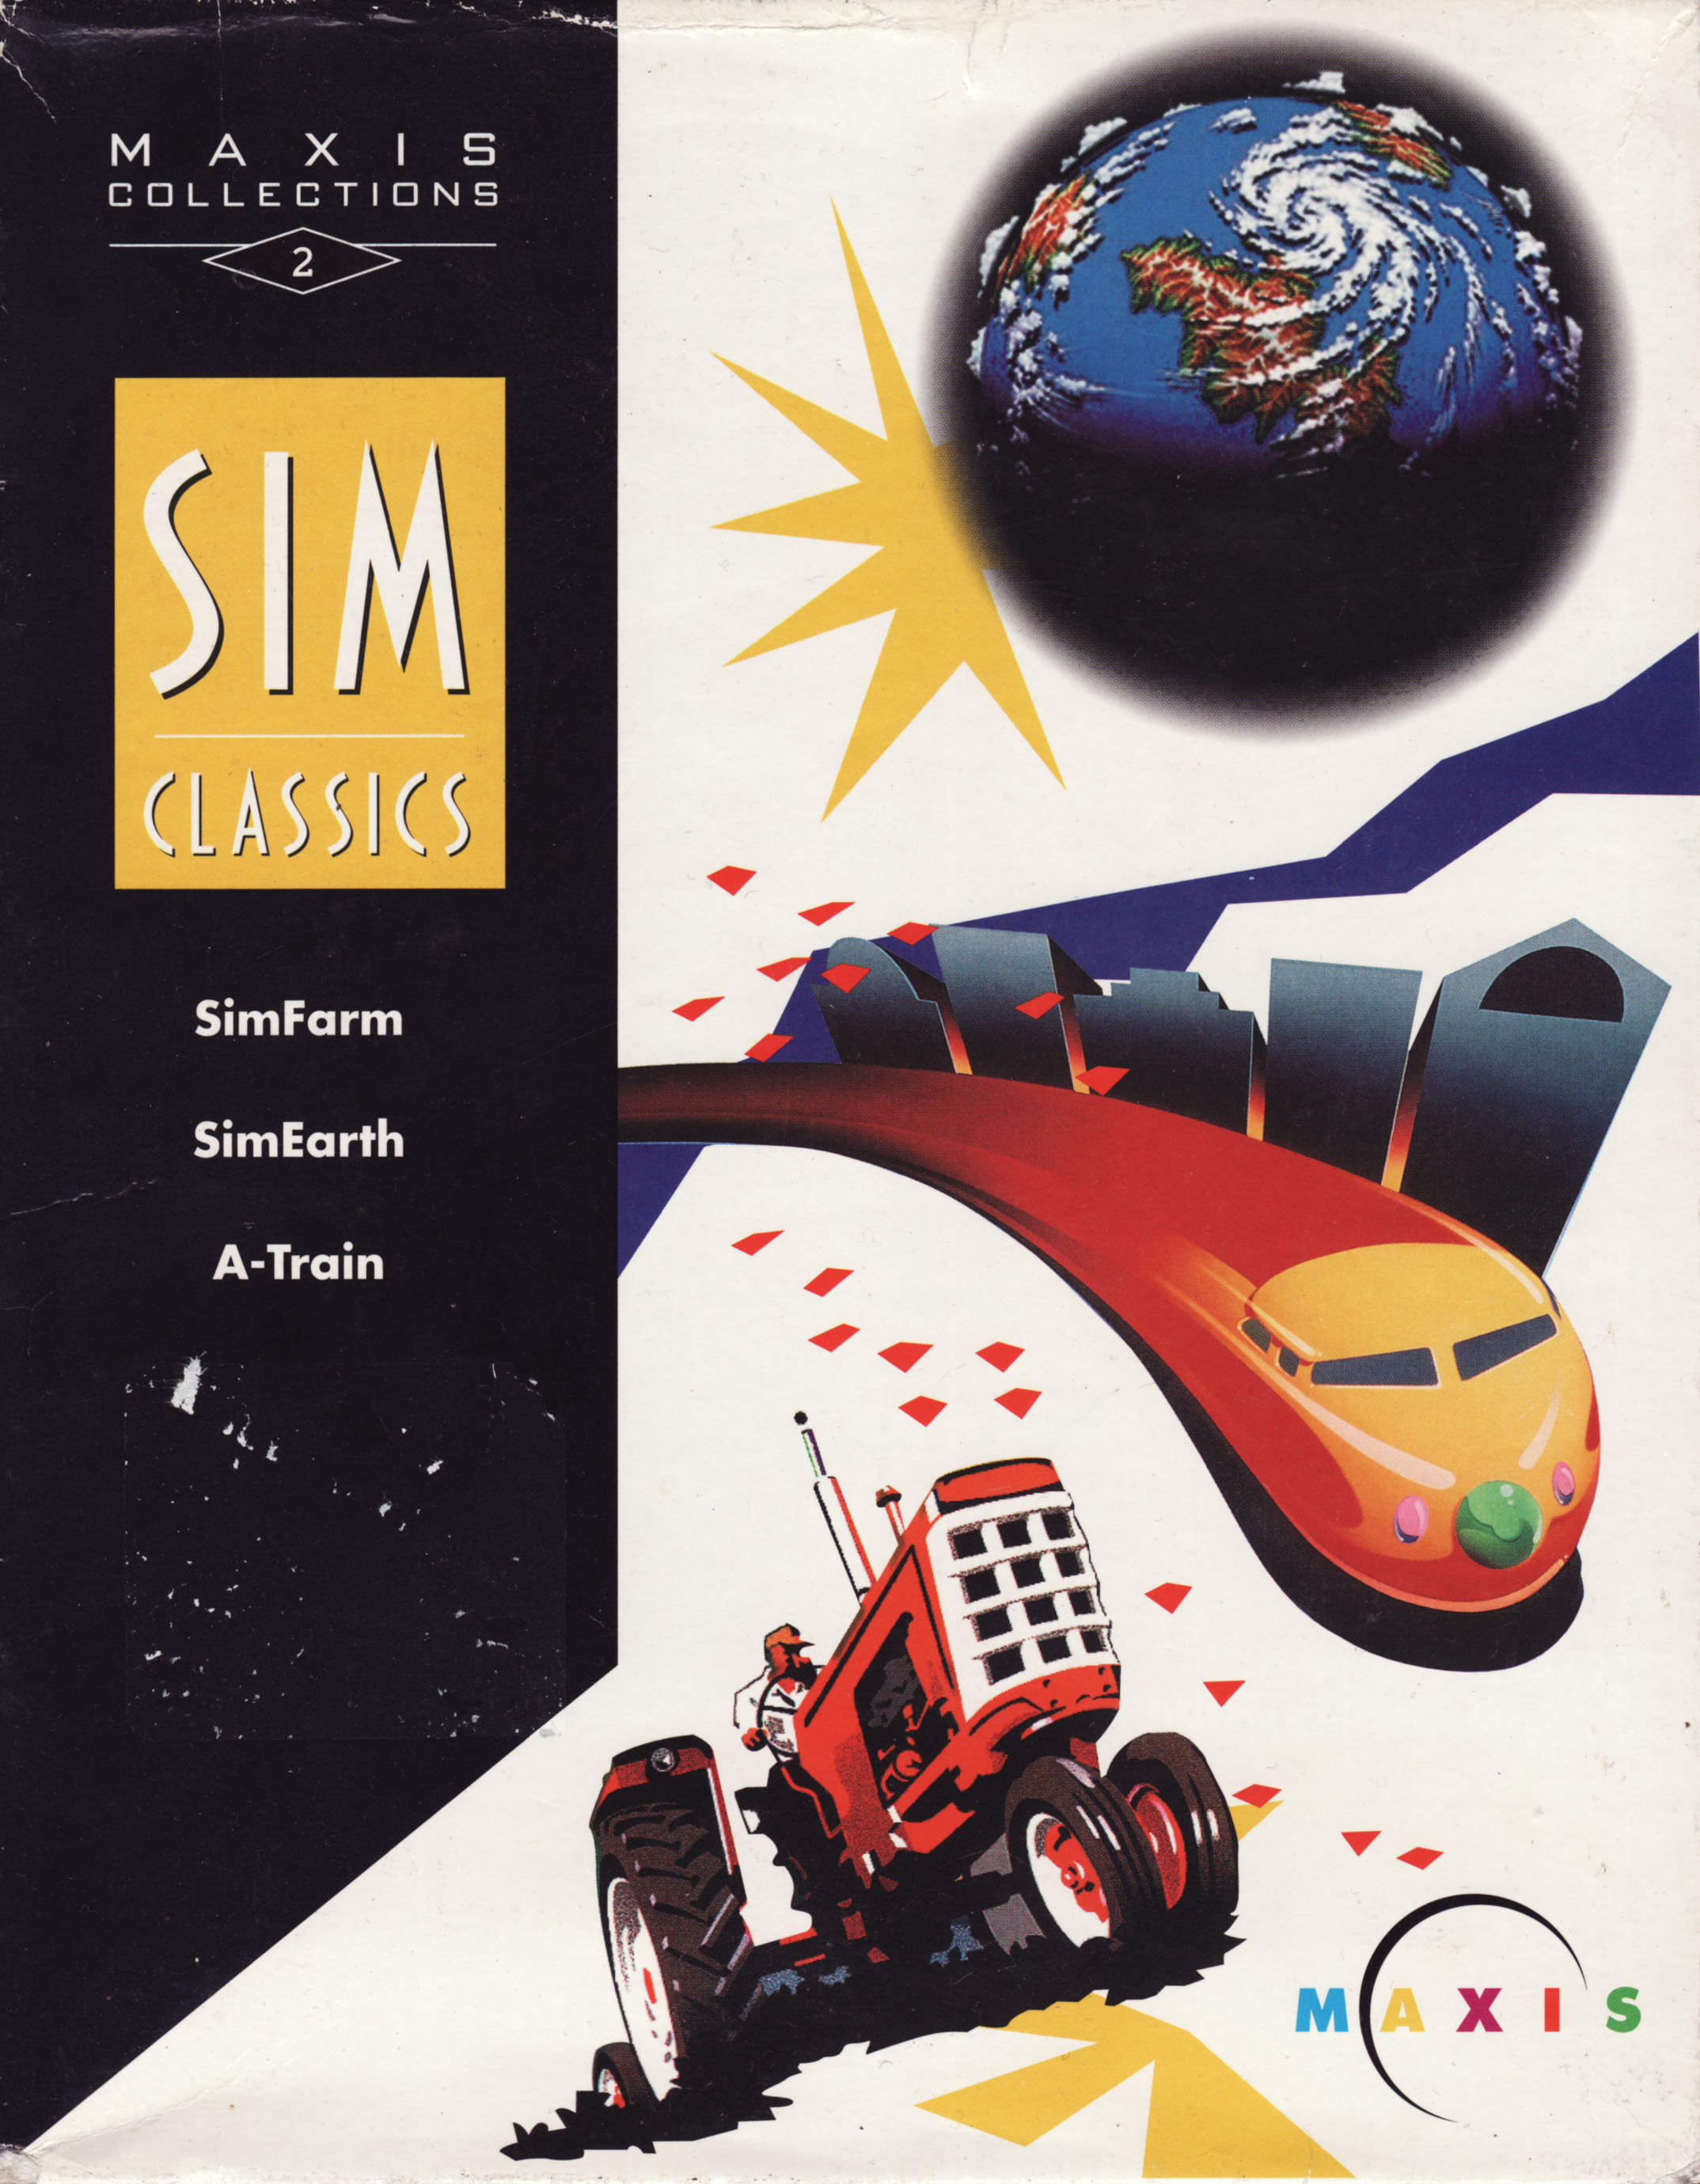 image : Sim Classics : Maxis Collections 2